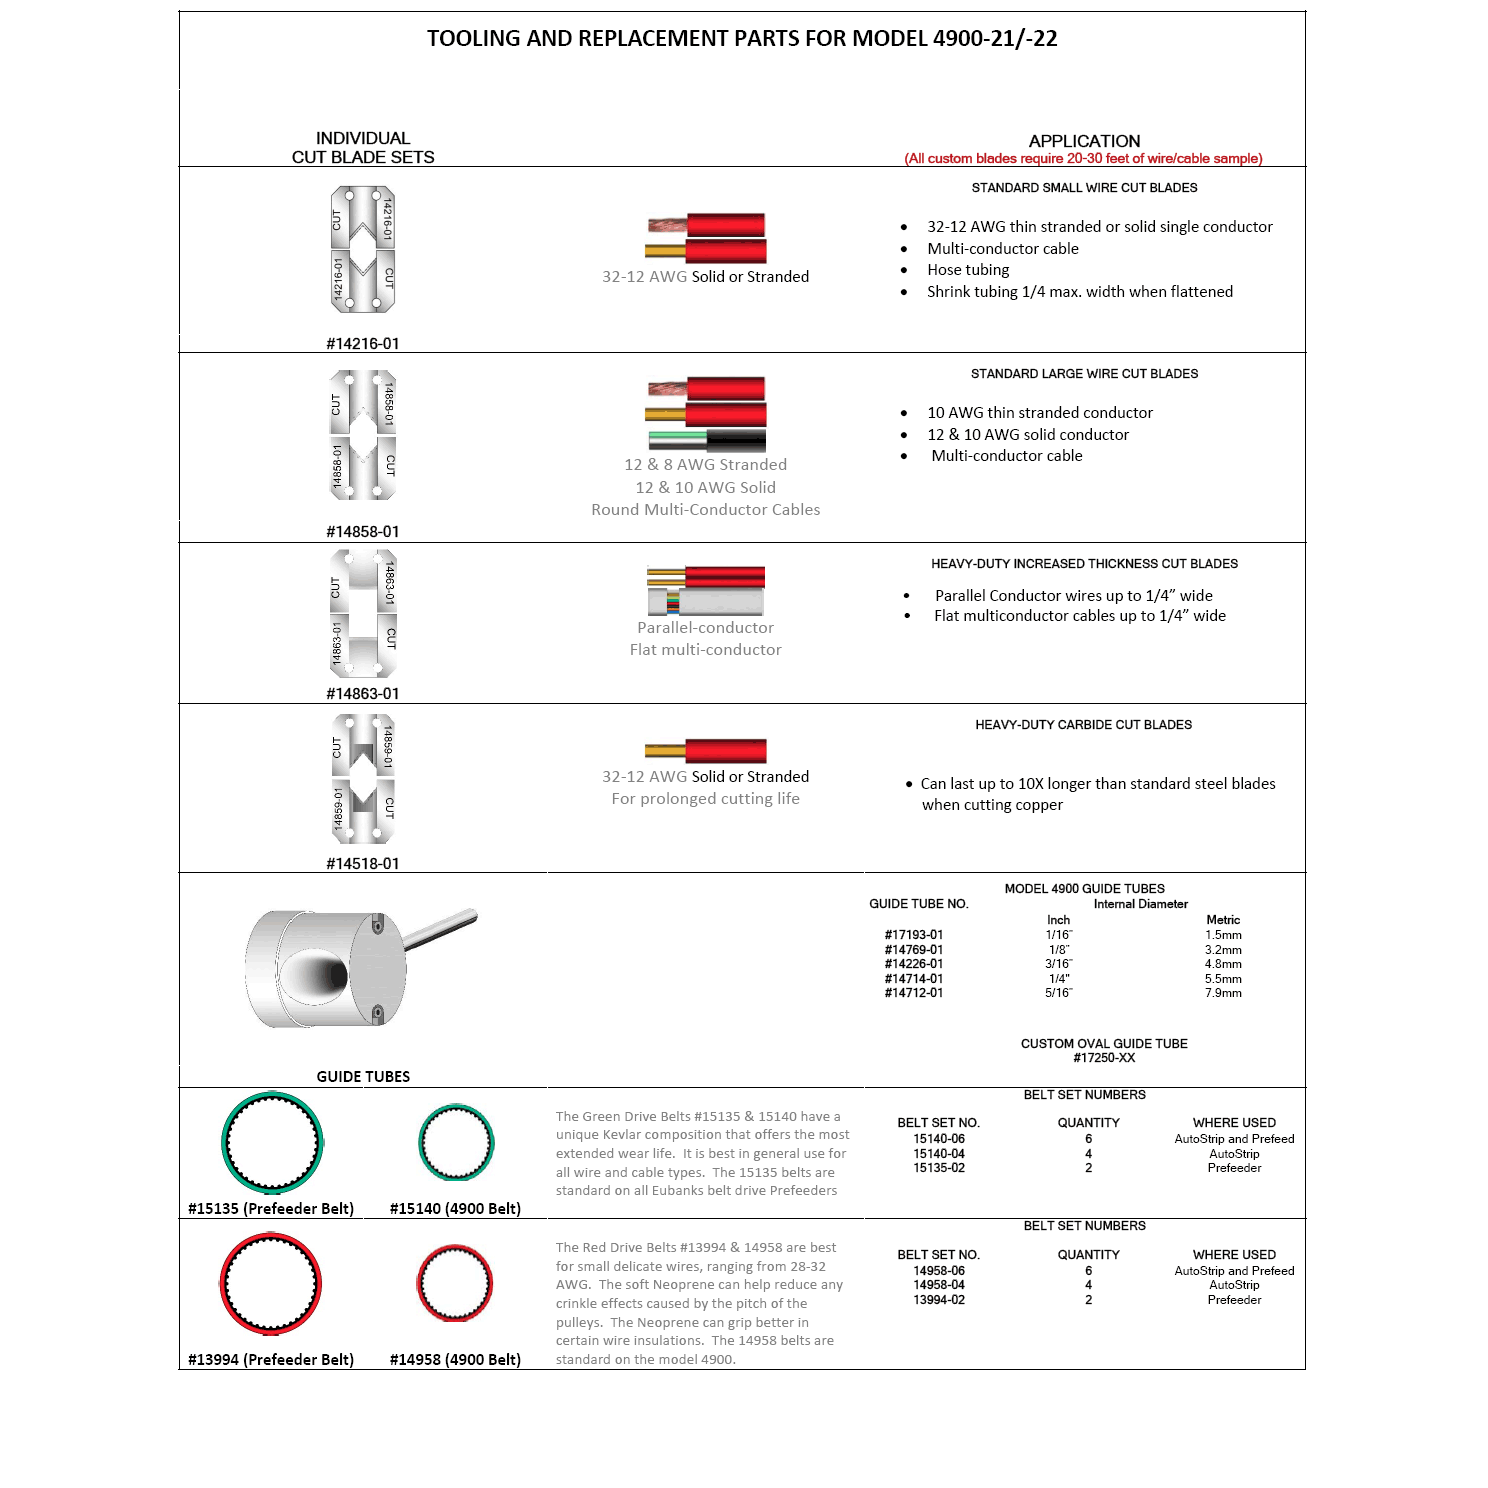 Eubanks AutoStrip 4900 Tooling & Replacement Parts (see PDF document on this page)